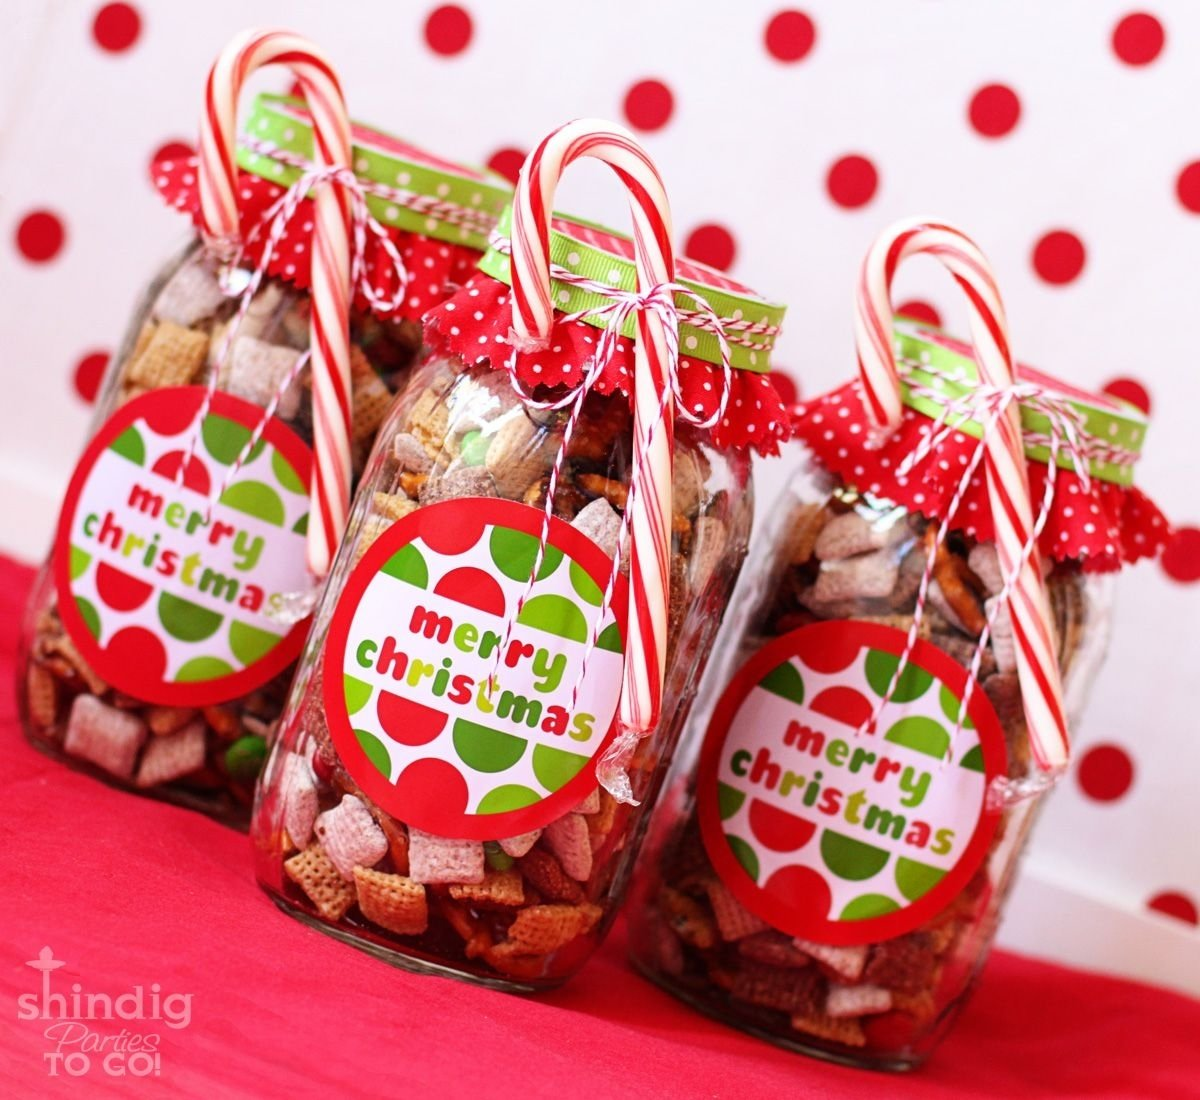 10 Best Home Made Christmas Gift Ideas amandas parties to go free merry christmas tags and gift idea 2020